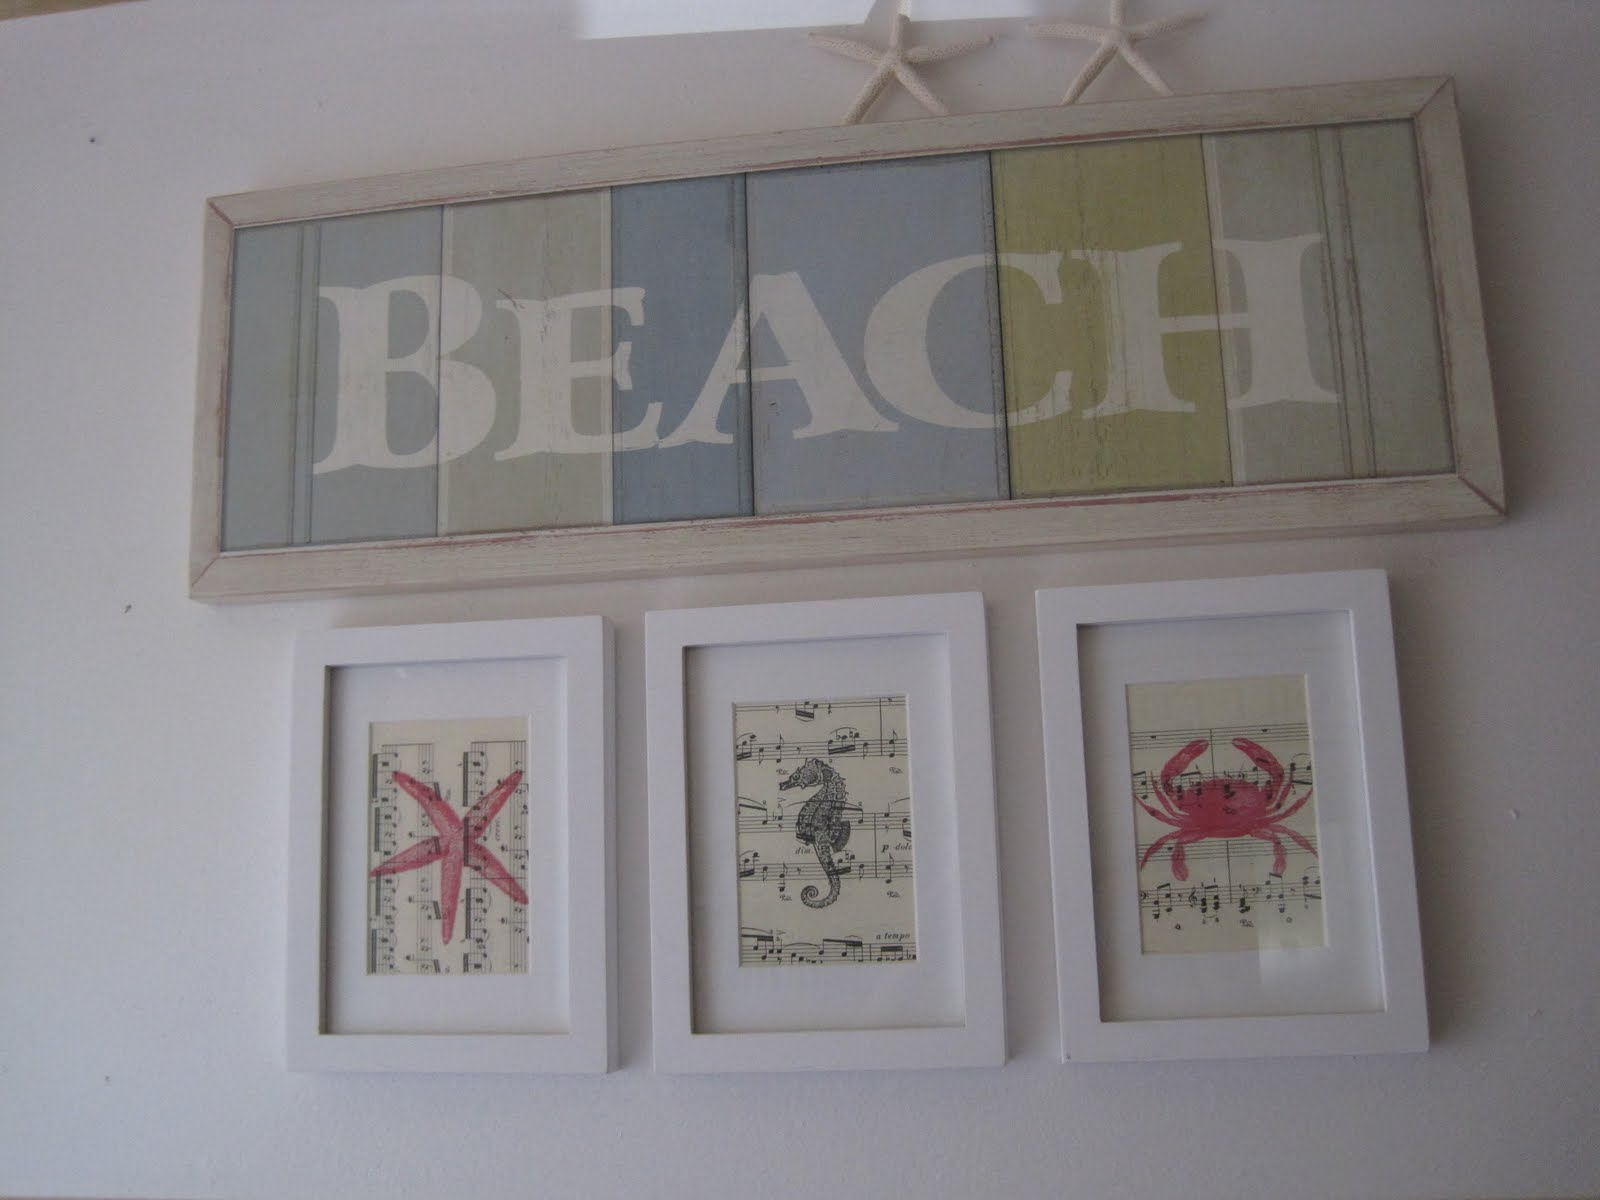 Beach Creatures Wall Art - Okio B Designs